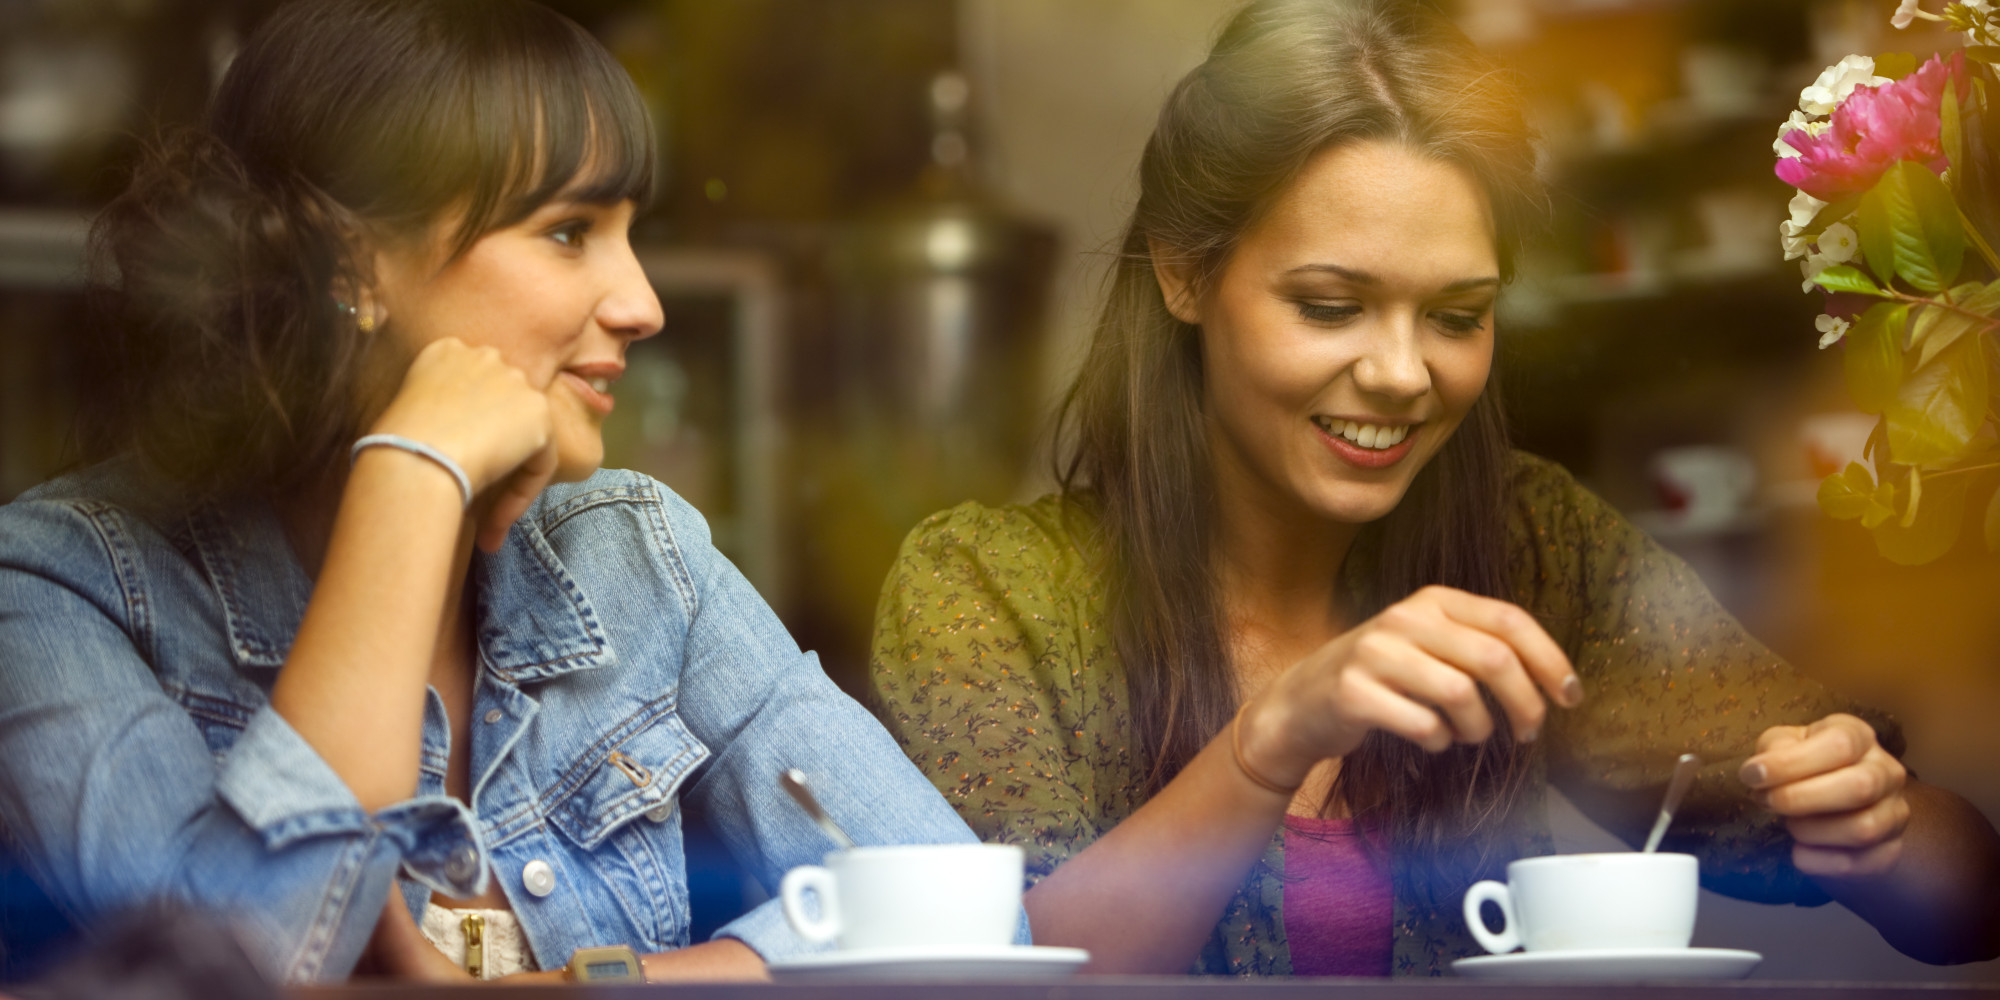 No Social Media Required: 7 Tips for Meeting New Friends